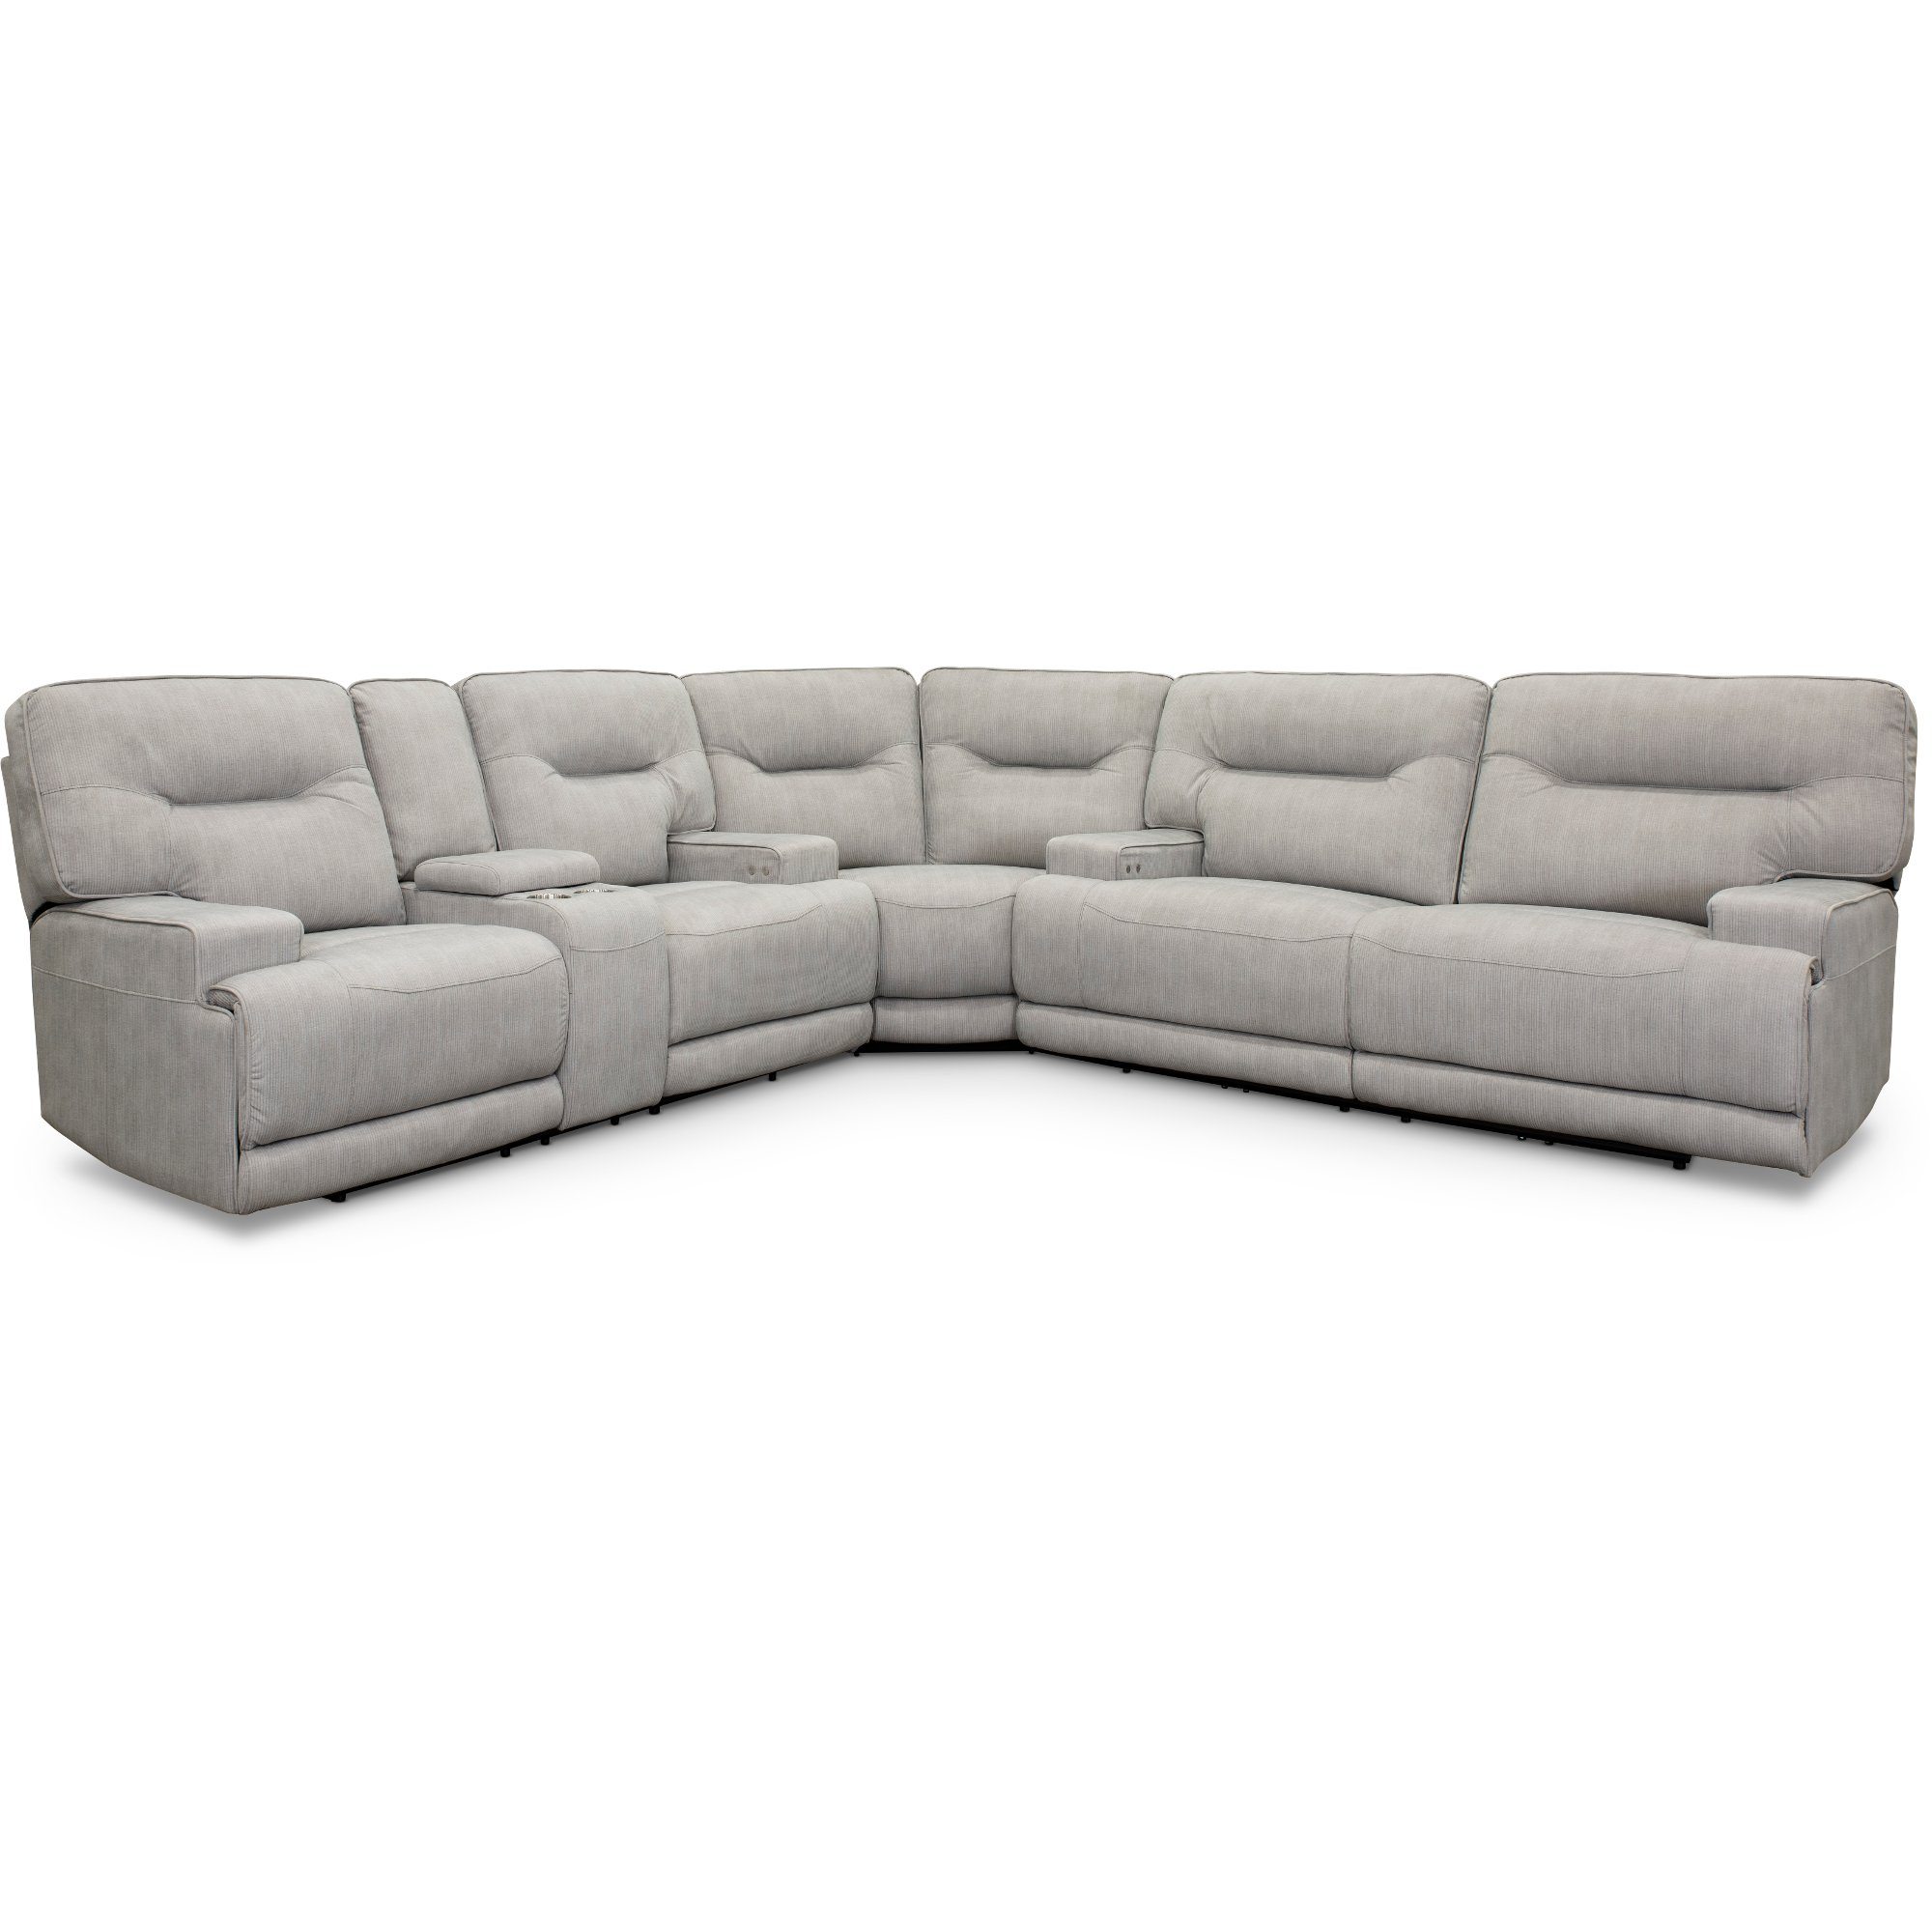 Sterling Gray 3 Piece Power Reclining Sectional Sofa - Stanza